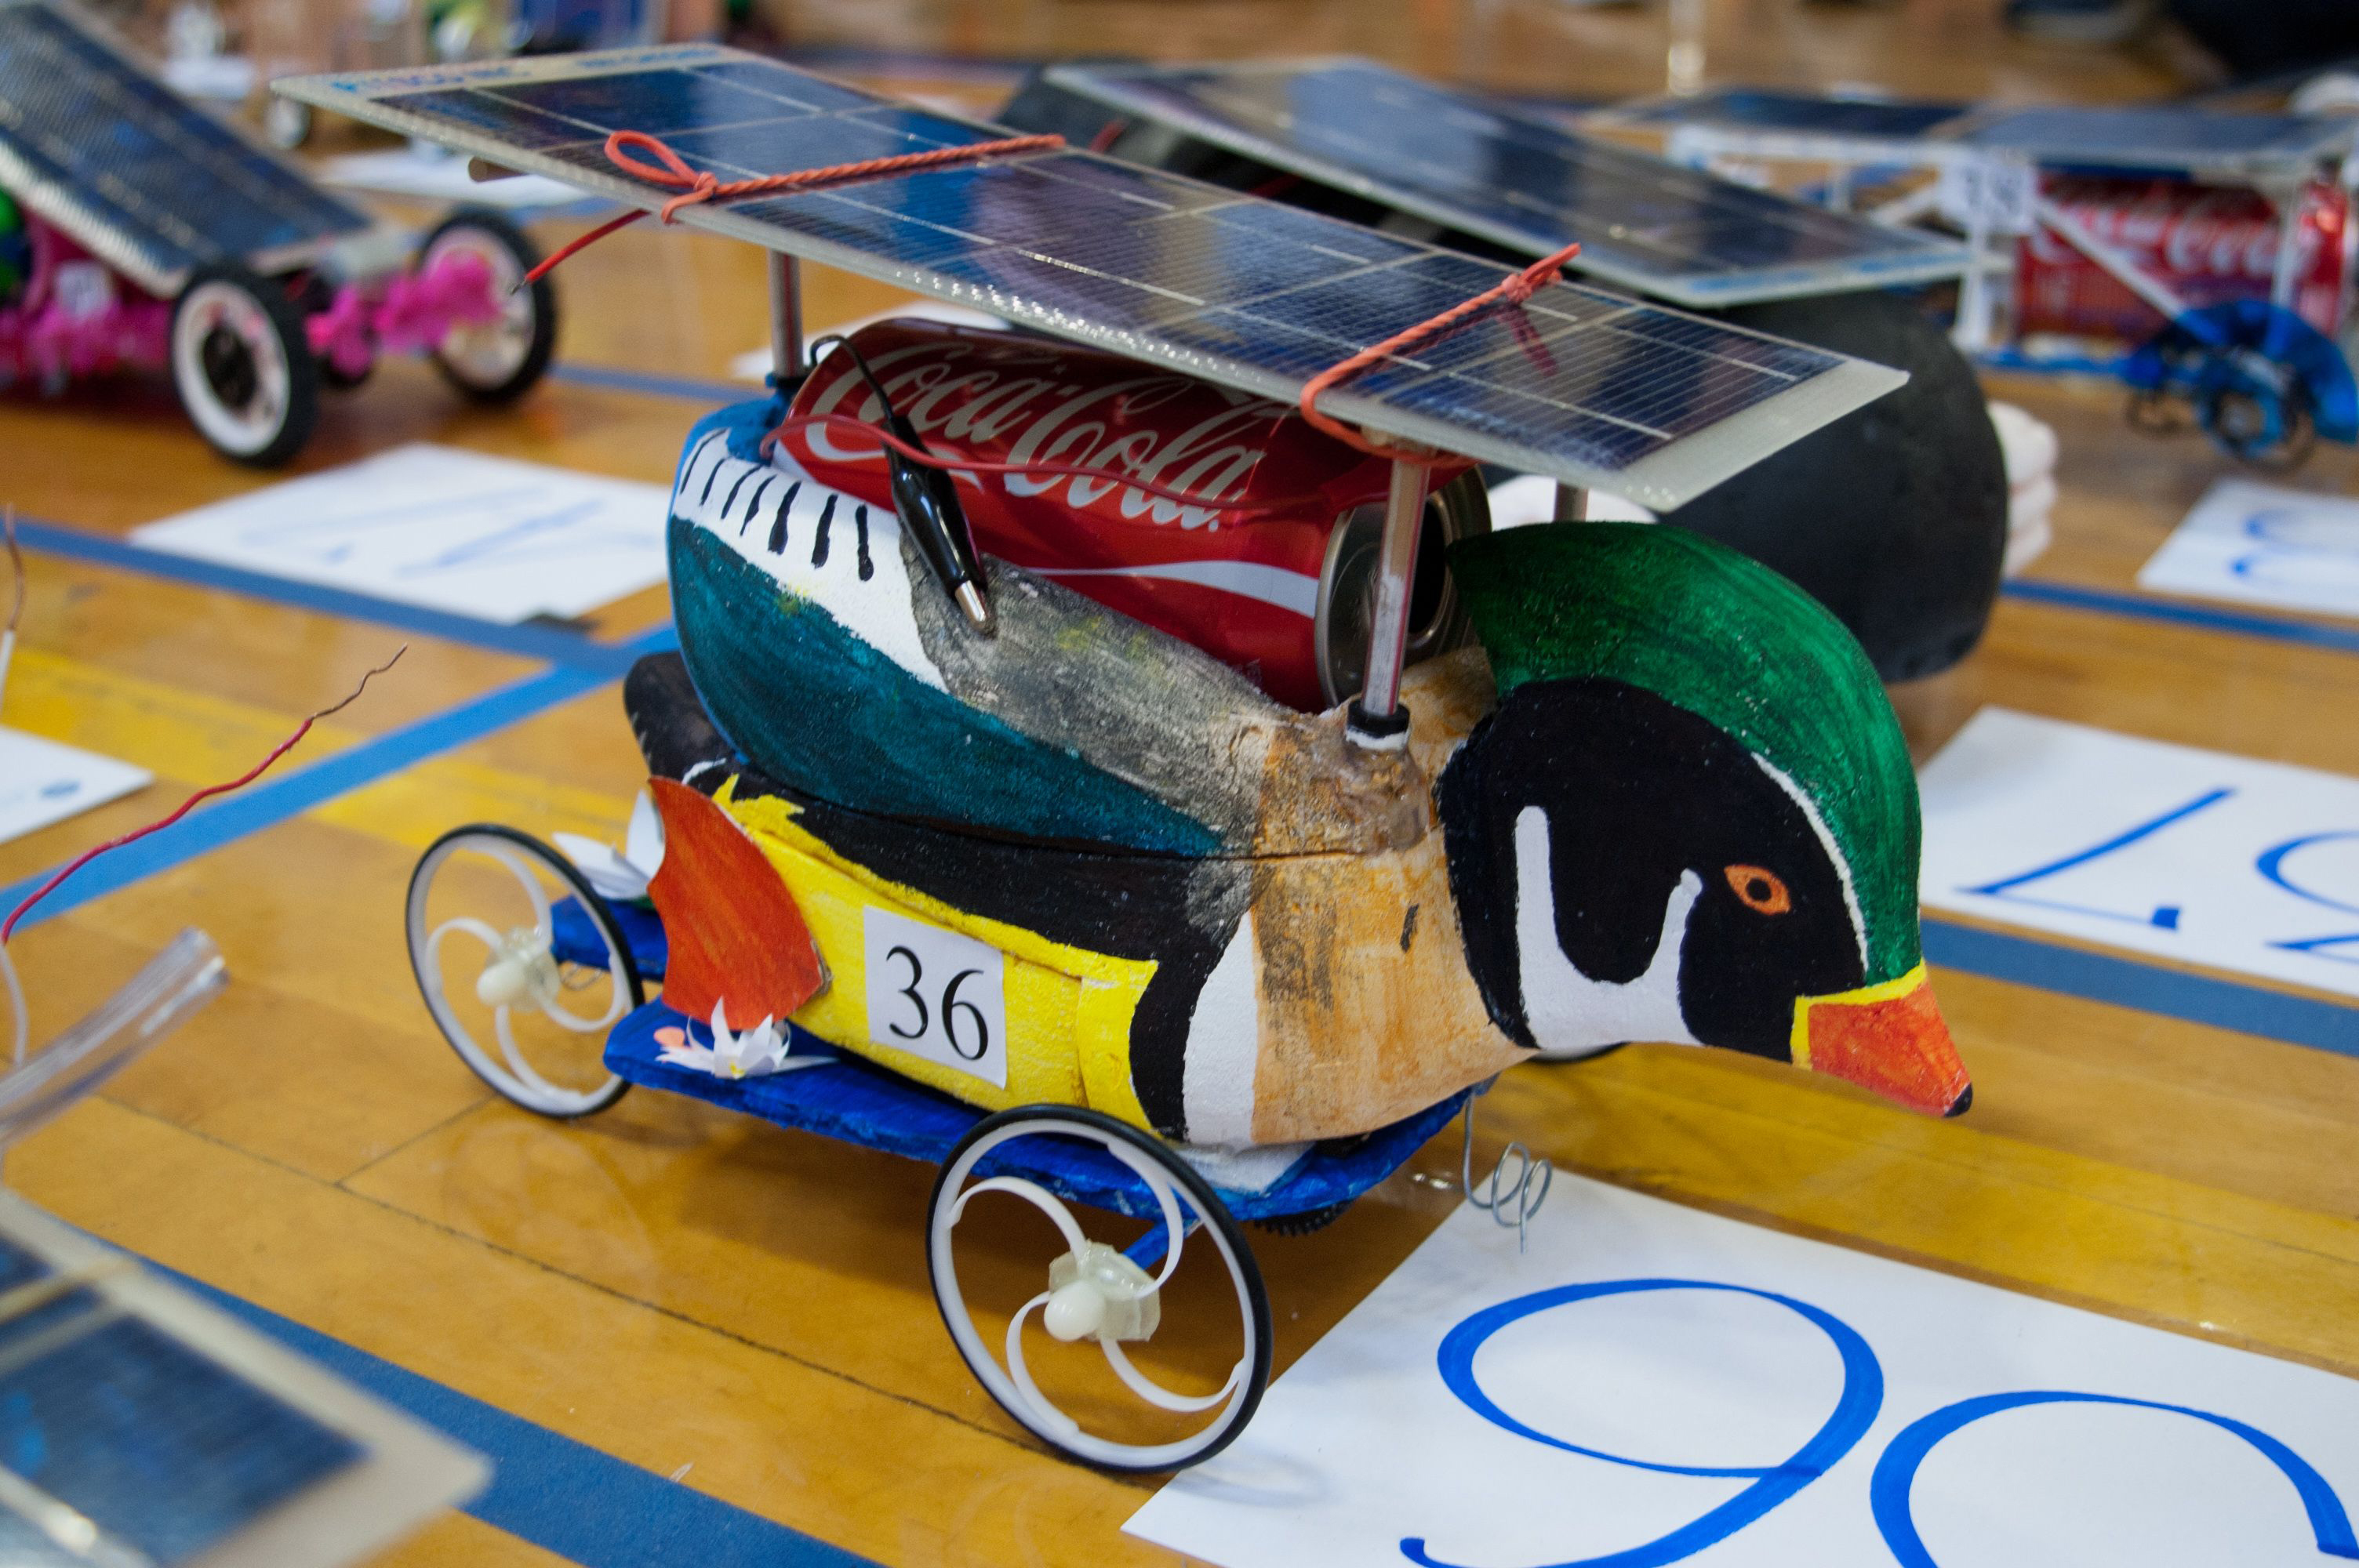 A solar car that was one winner in this year's Junior Solar Sprint competition.